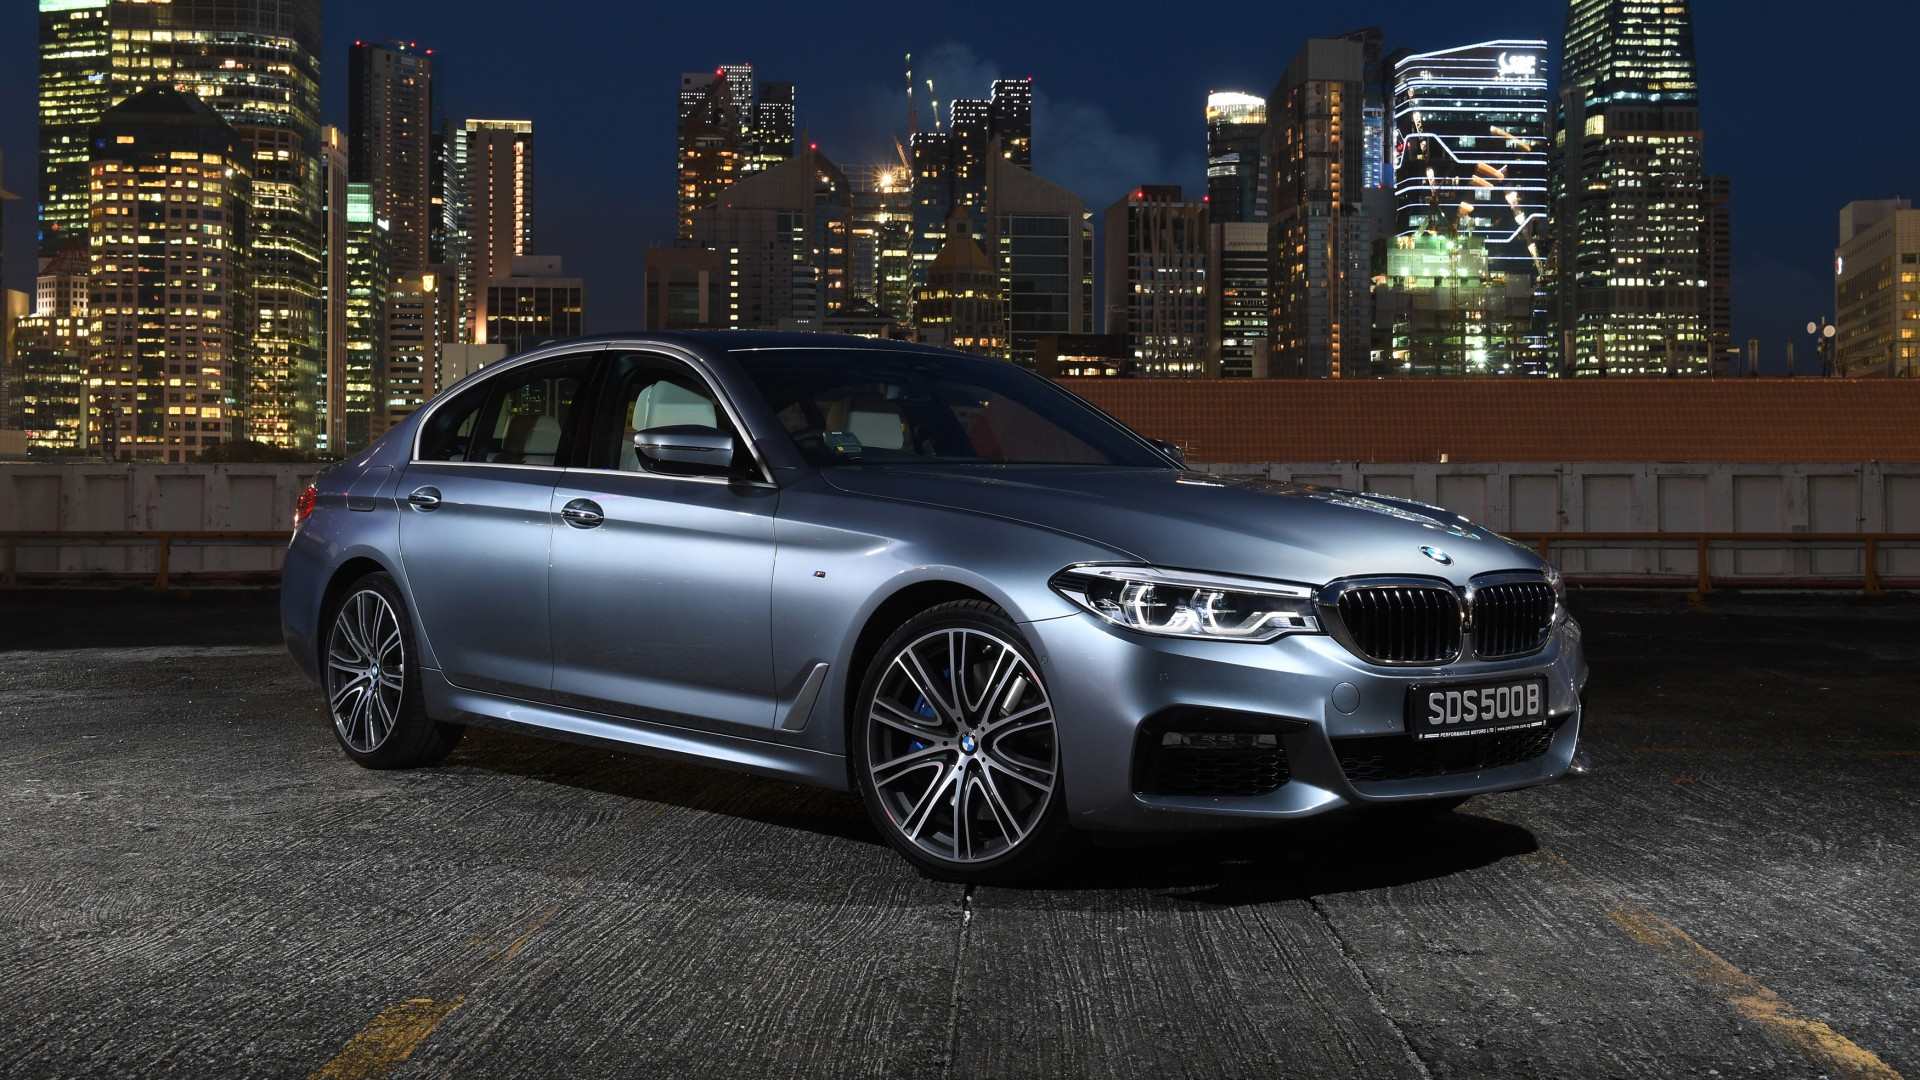 2017 bmw 540i m sport wallpaper hd car wallpapers id 7624 - Cars hd wallpapers for laptop ...